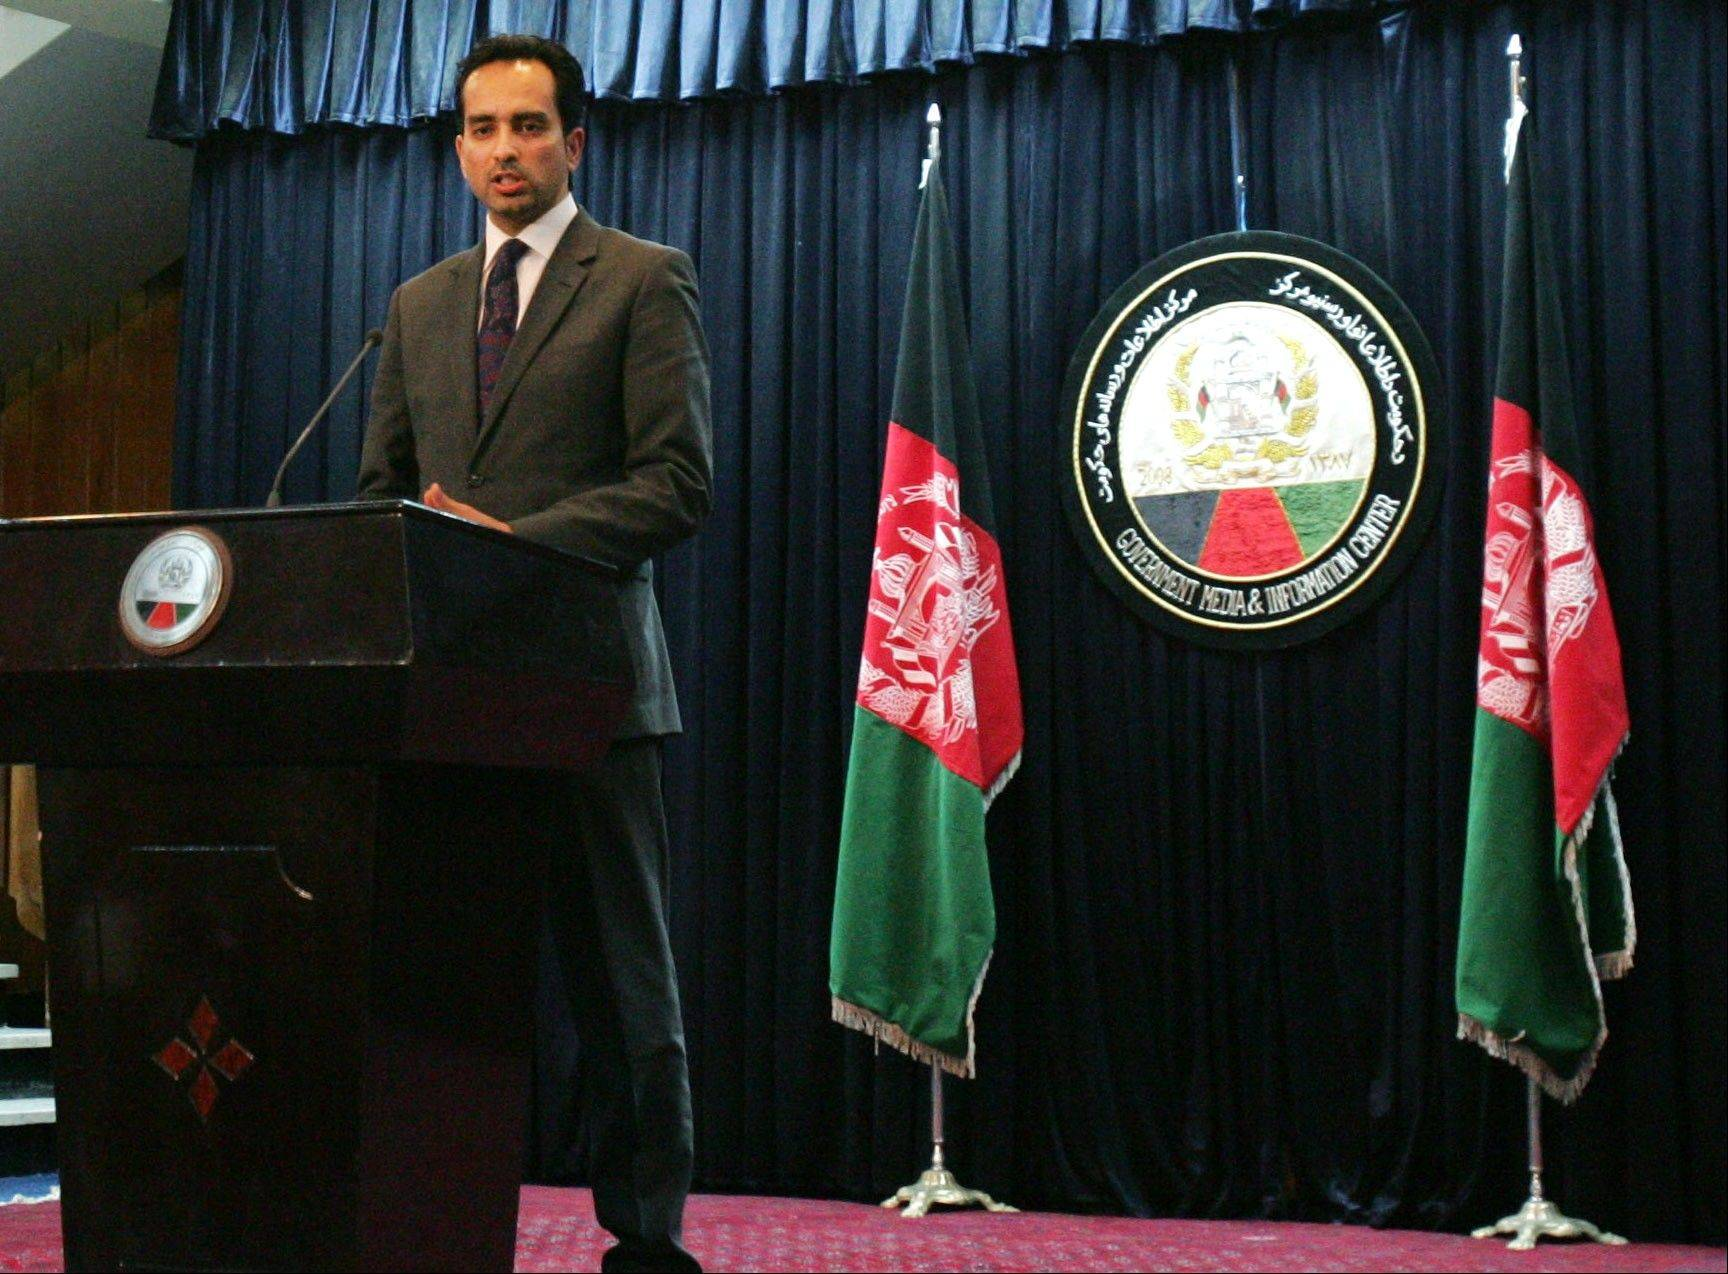 Afghanistan presidential spokesman Aimal Faizi, speaking Sunday in Kabul, said all U.S. special forces must leave eastern Wardak province within two weeks because of allegations that Afghans working with them are torturing and abusing other Afghans.